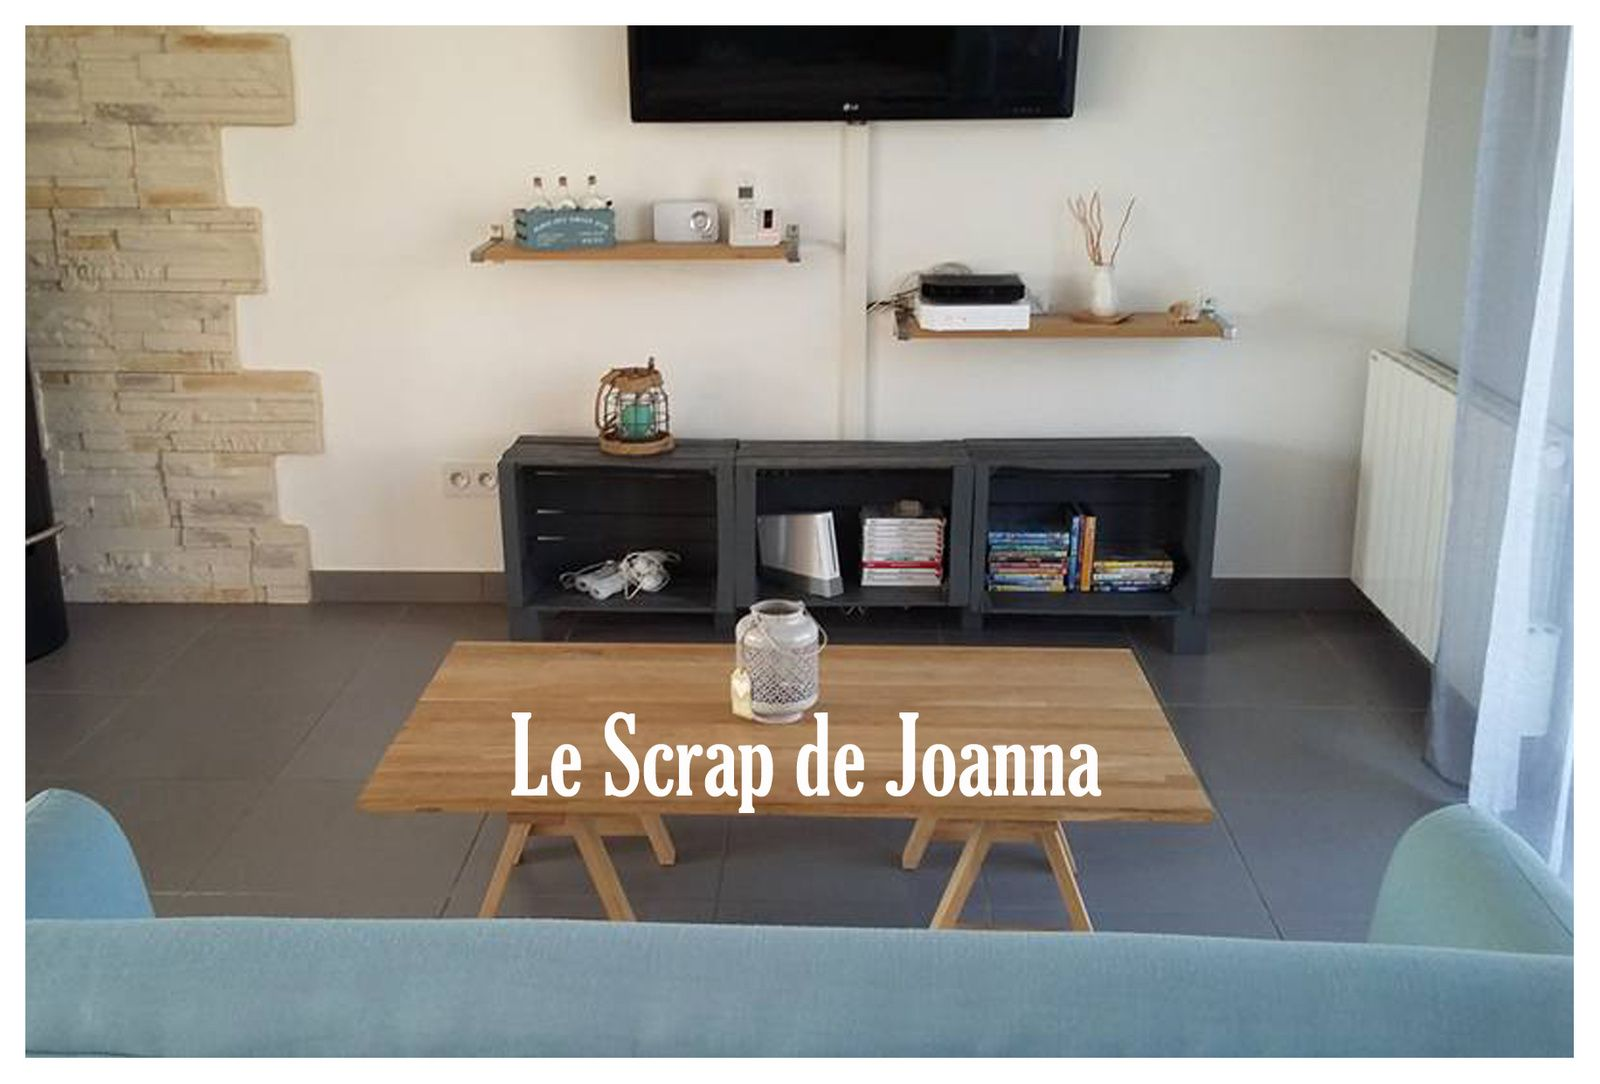 Meuble Tv Caisse A Pomme - Caisse Pommes Le Scrap De Joanna[mjhdah]https://www.simplyabox.fr/1069-thickbox_default/meuble-tv-6s2h.jpg